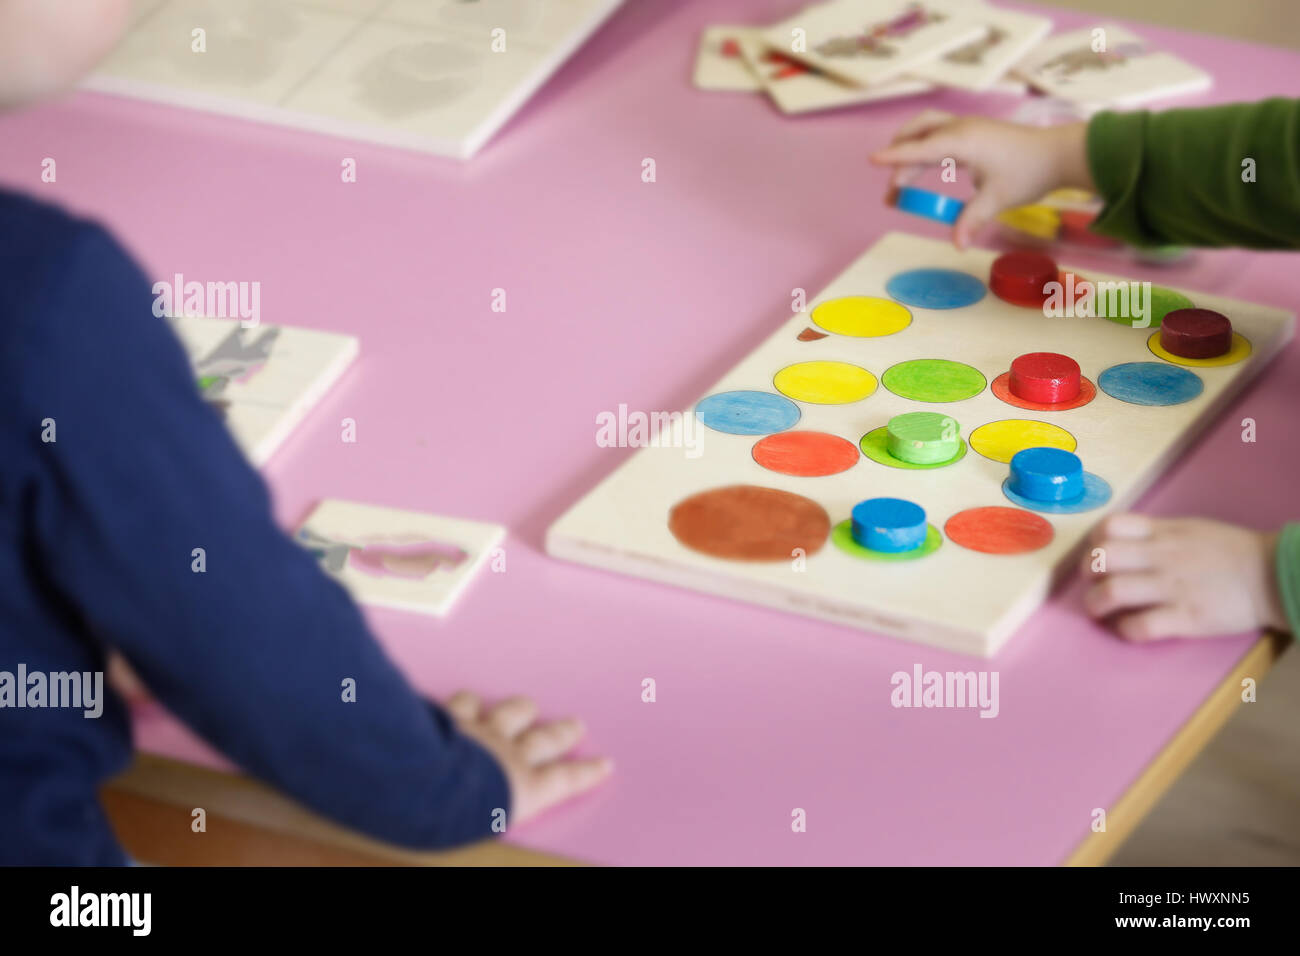 Children playing with homemade, do-it-yourself educational toys, arranging and sorting colors and sizes. Learning - Stock Image